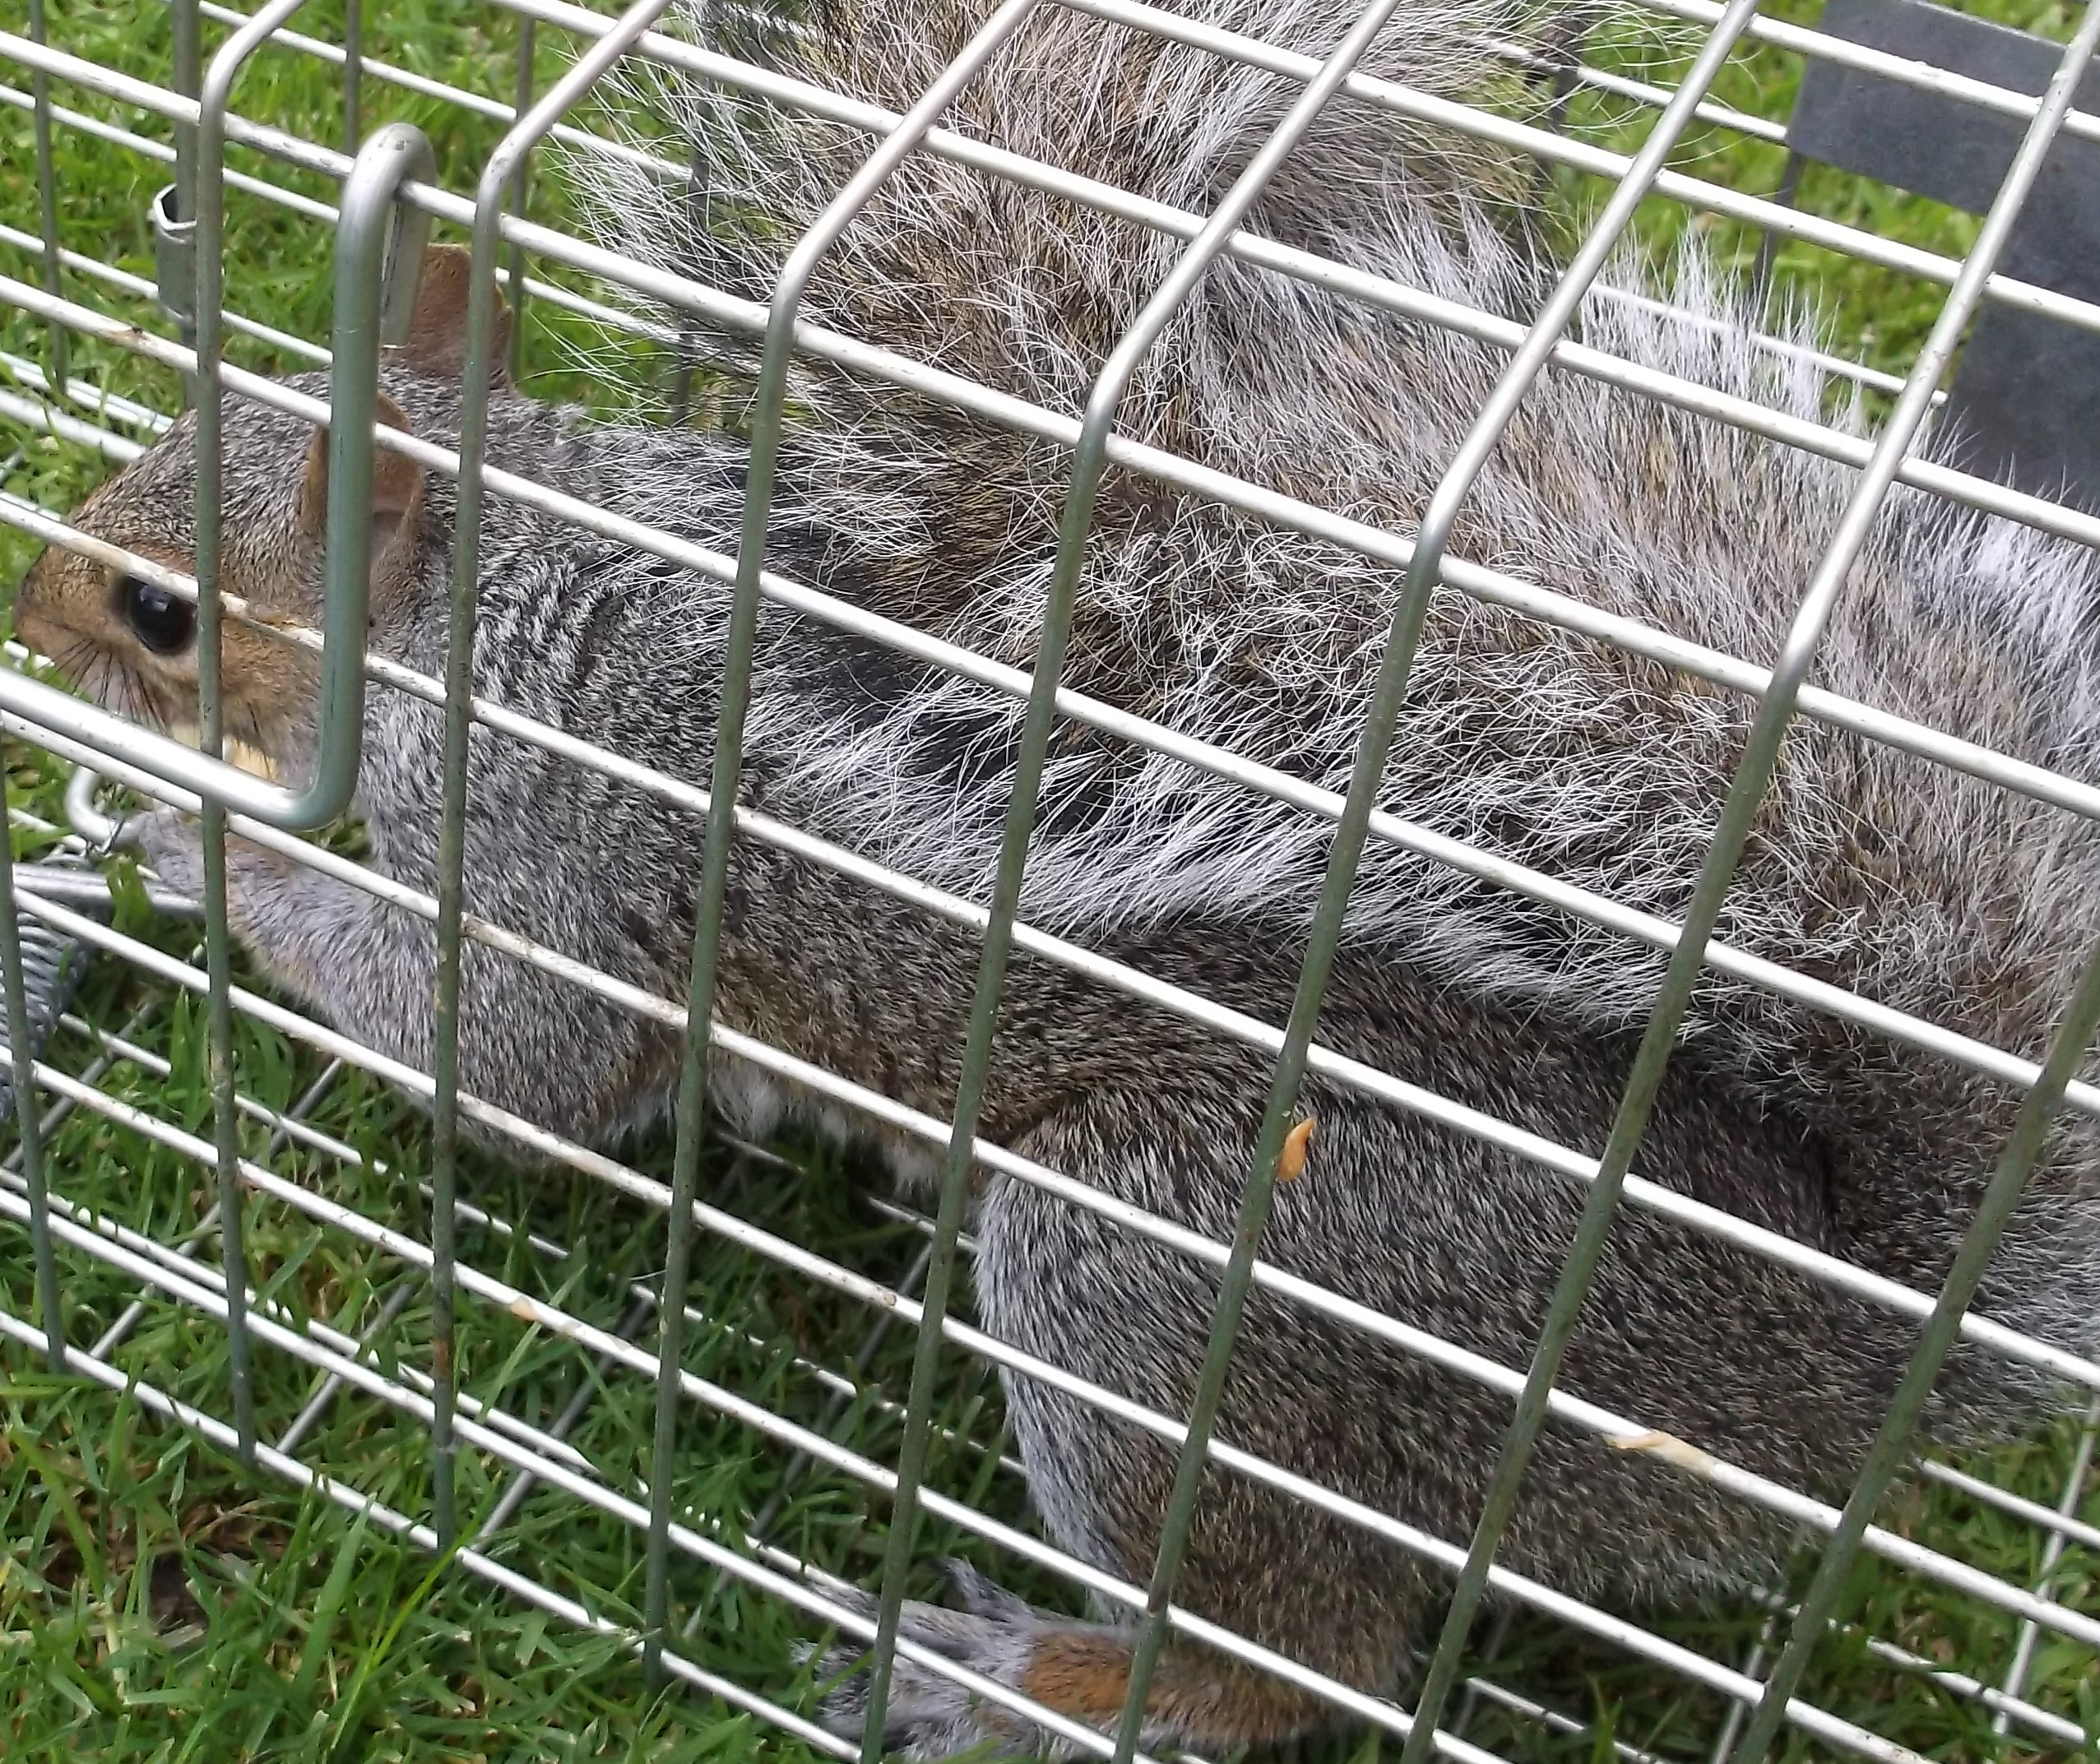 Calls Coming In For Grey Squirrels Six Removed From